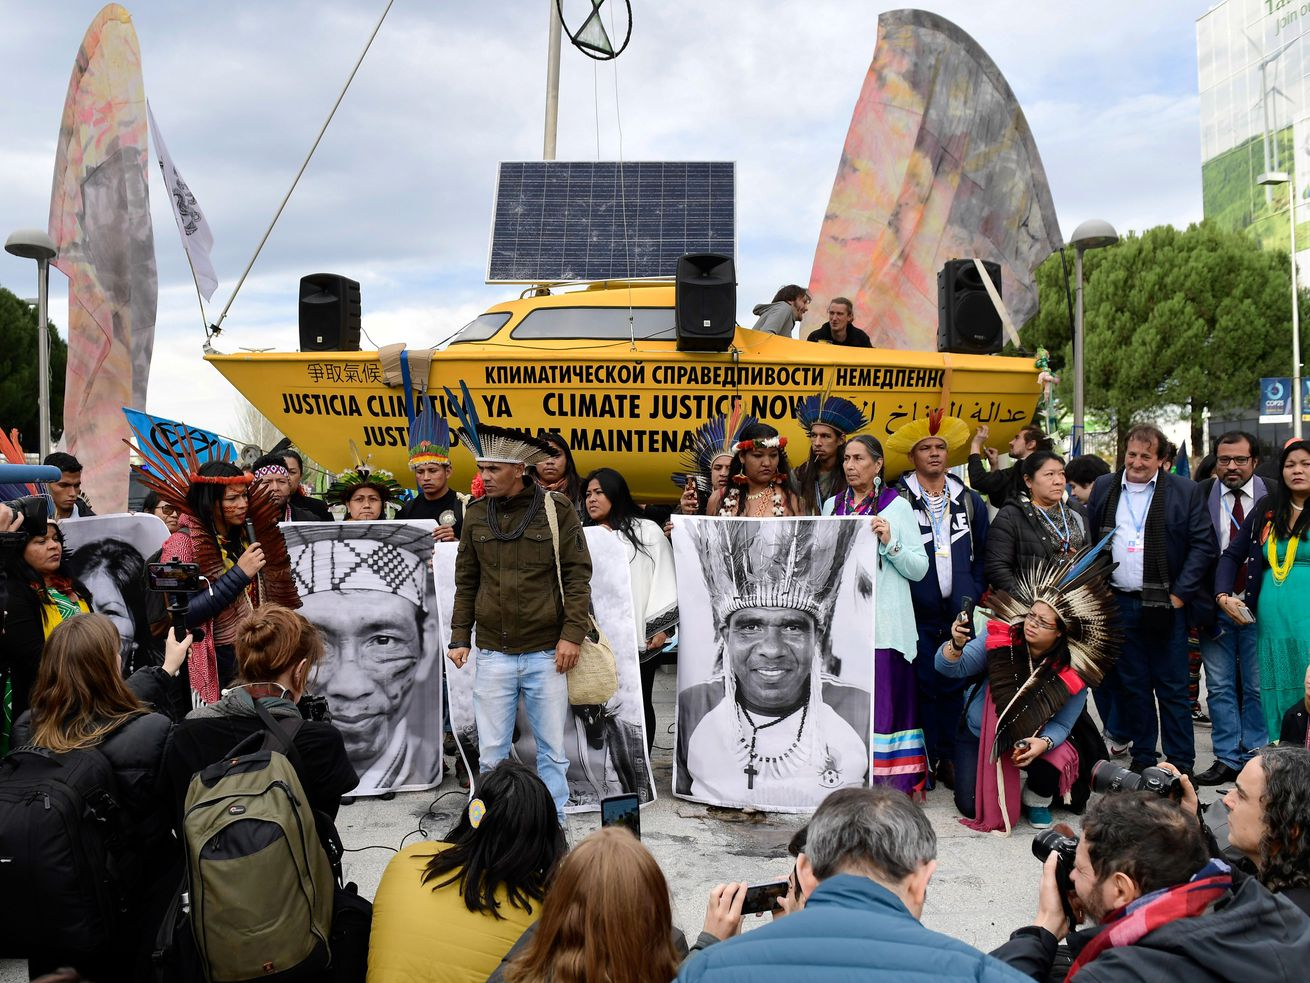 Brazilian natives take part in a demonstration demanding climate justice outside the venue of the UN Climate Change Conference COP25 at the 'IFEMA - Feria de Madrid' exhibition centre, in Madrid, on December 9, 2019.